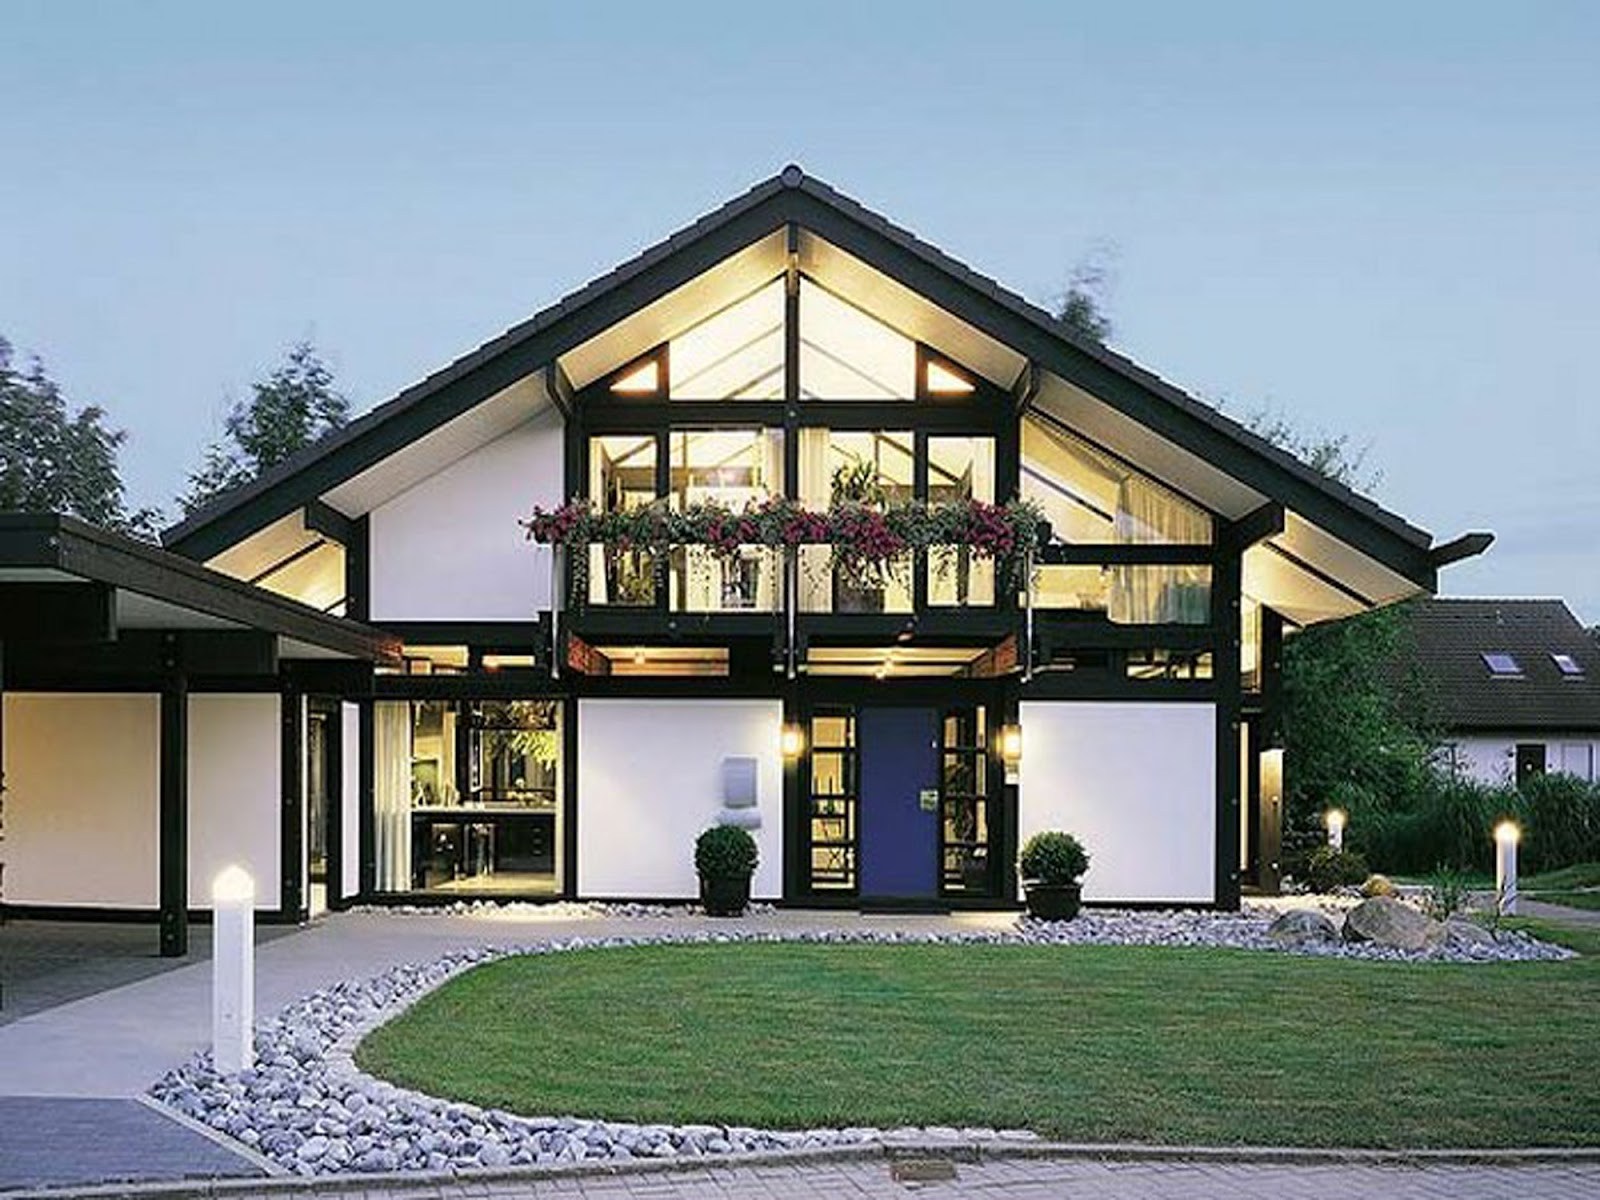 New home designs latest beautiful latest modern home for Best house designs 2012